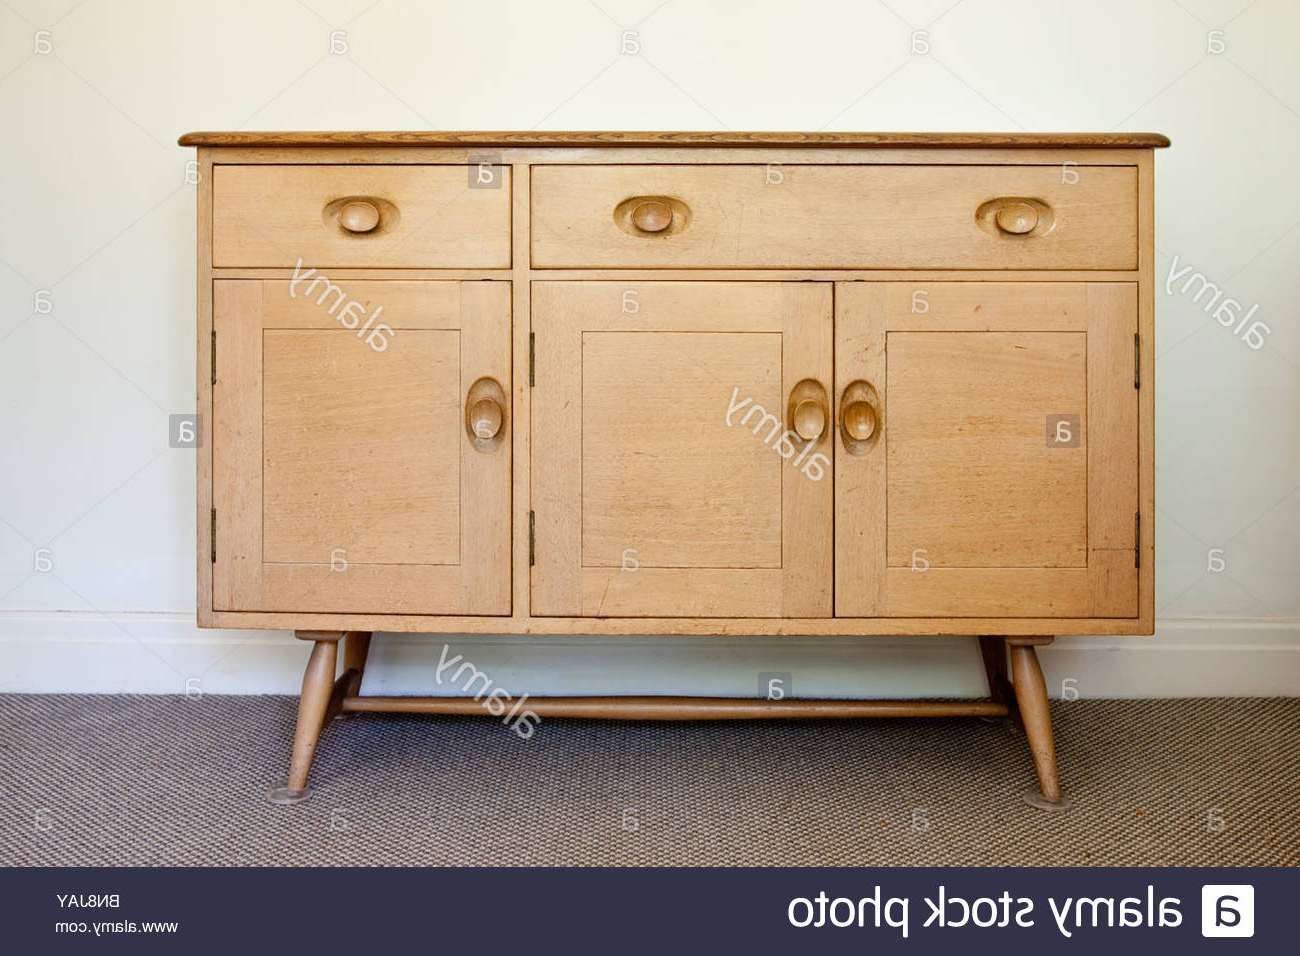 1950s Furniture Stock Photos & 1950s Furniture Stock Images – Alamy Regarding 50s Sideboards (View 11 of 20)